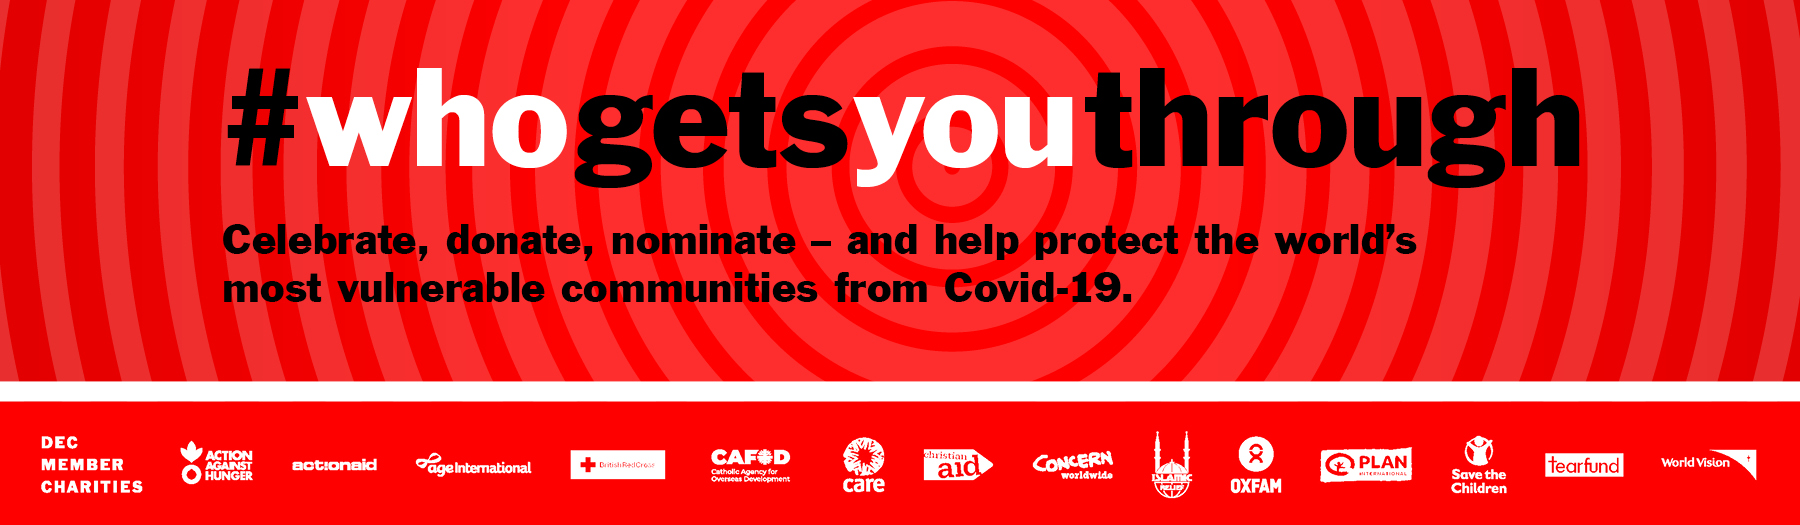 DEC Who Gets You Through - Celebrate, Donate, Nominate